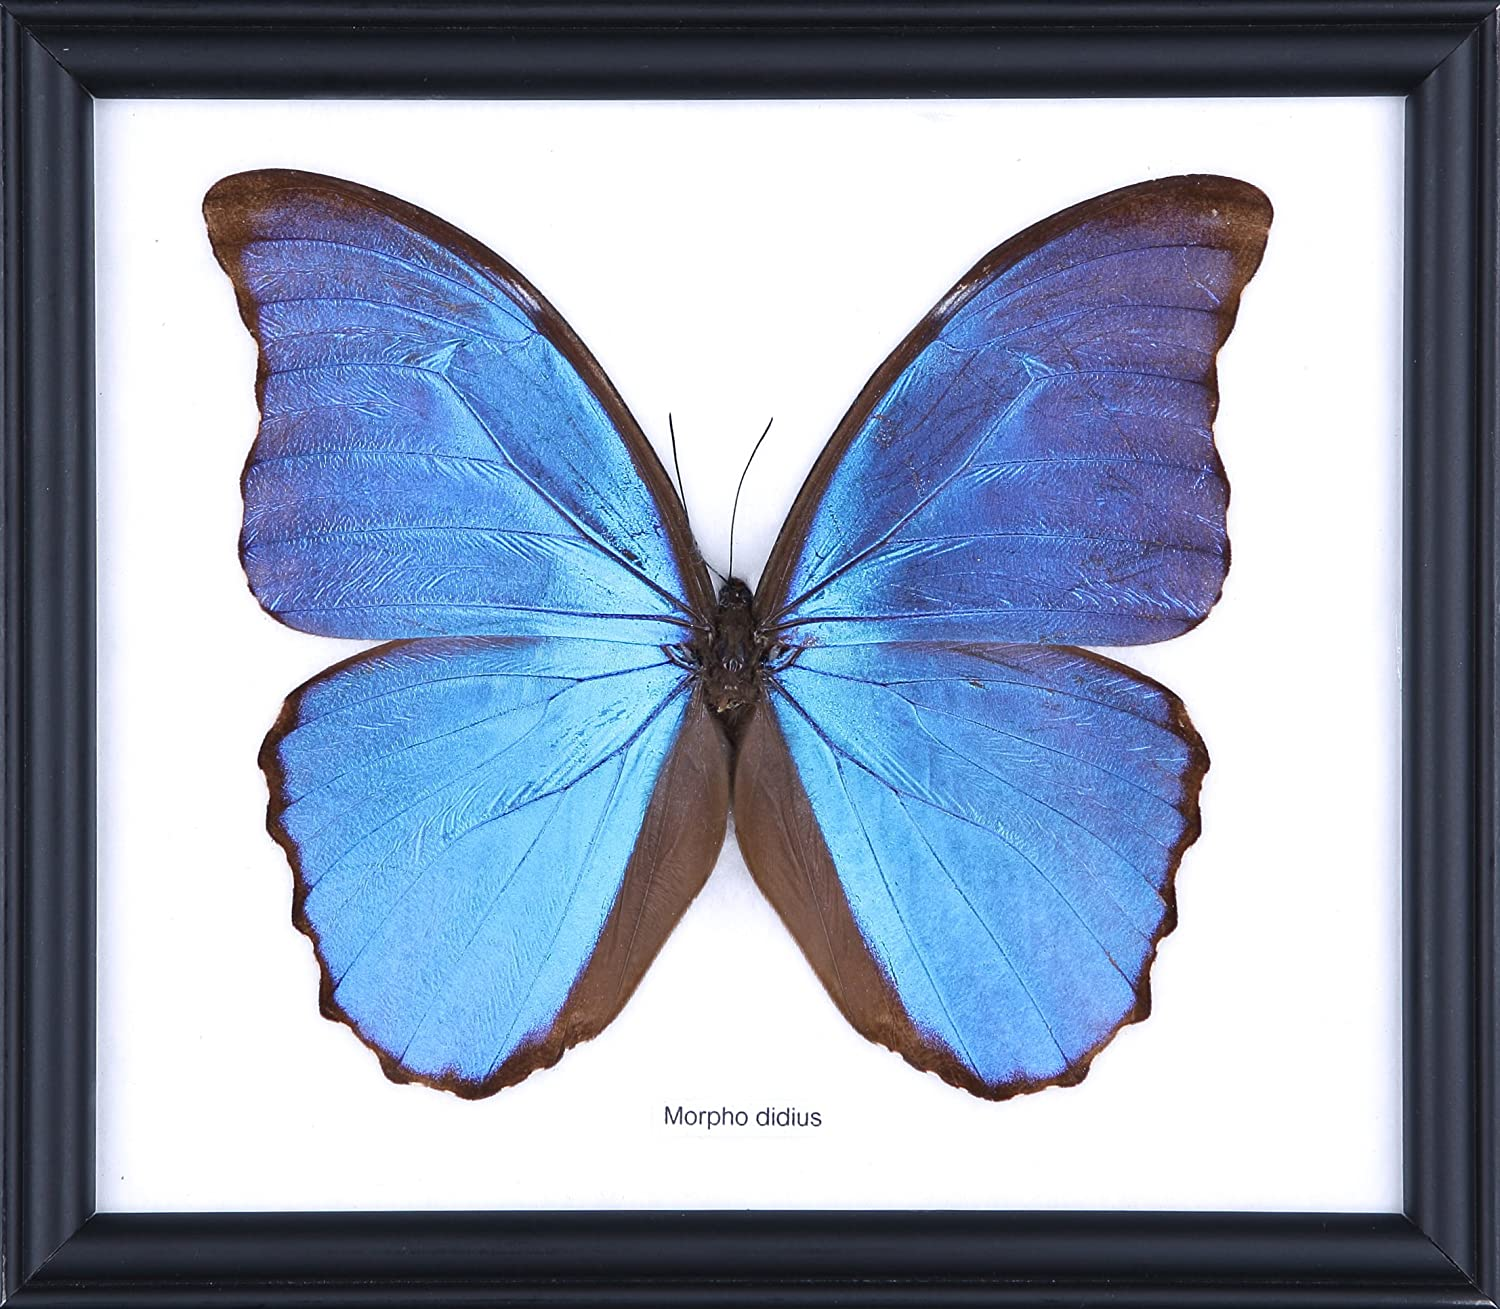 The Giant Blue Morpho Butterfly Morpho Didius Framed Mounted Under Glass Butterfly Taxidermy Home Decor Amazon Co Uk